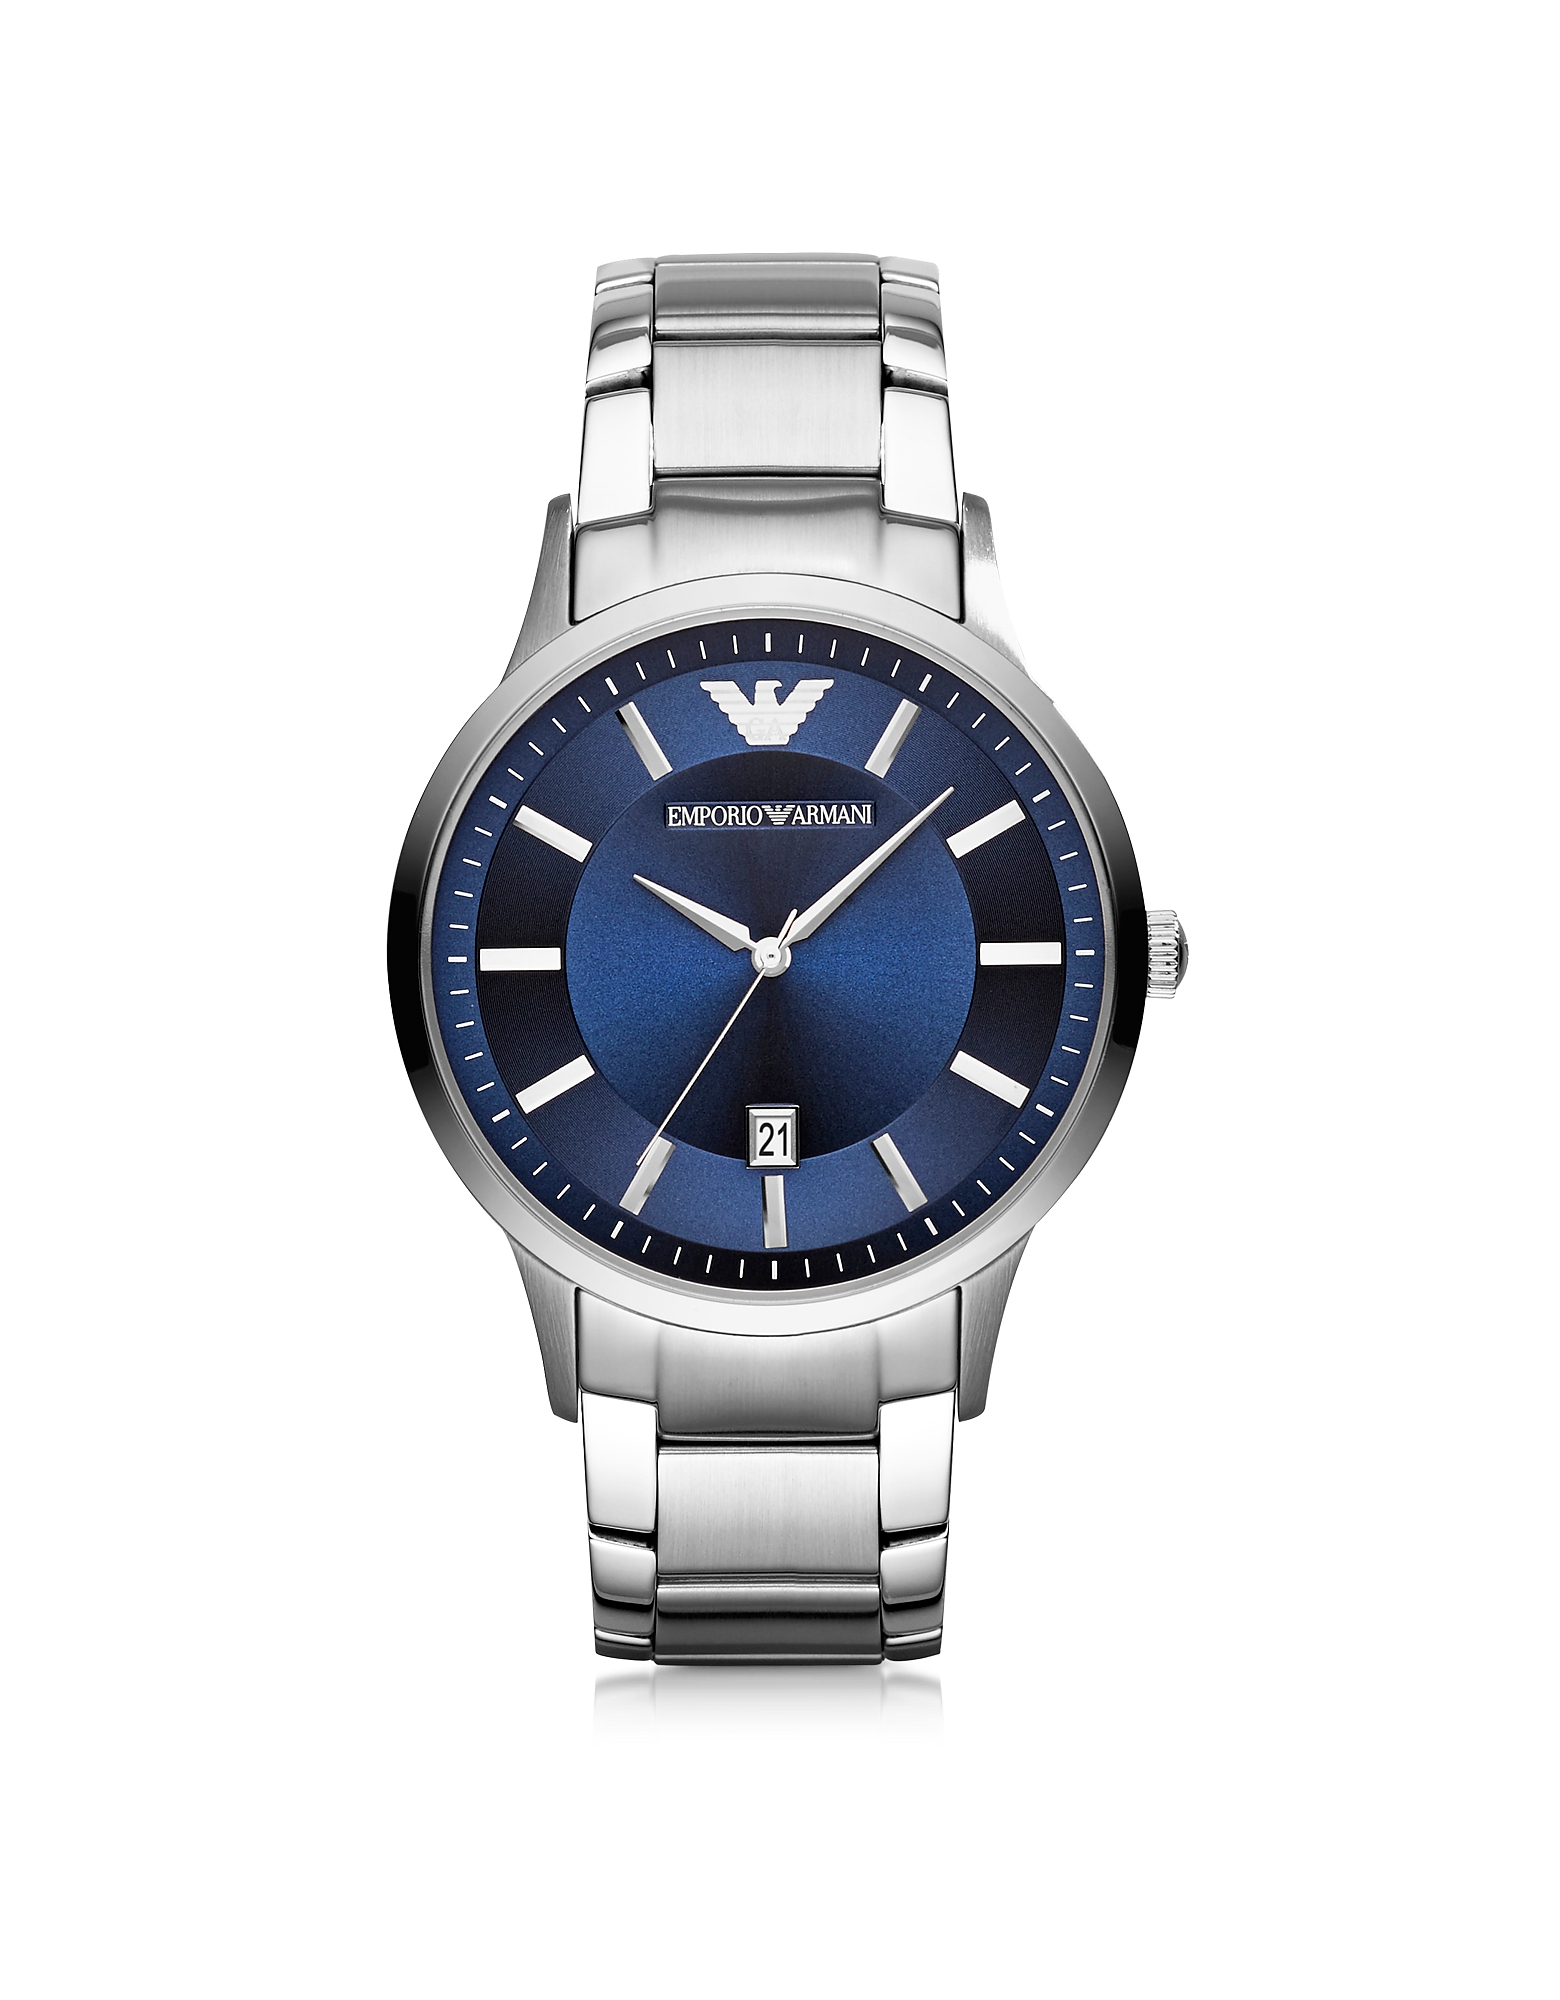 EMPORIO ARMANI | Emporio Armani Designer Men's Watches, Silver Tone Stainless Steel Men's Watch w/Blue Dial | Goxip